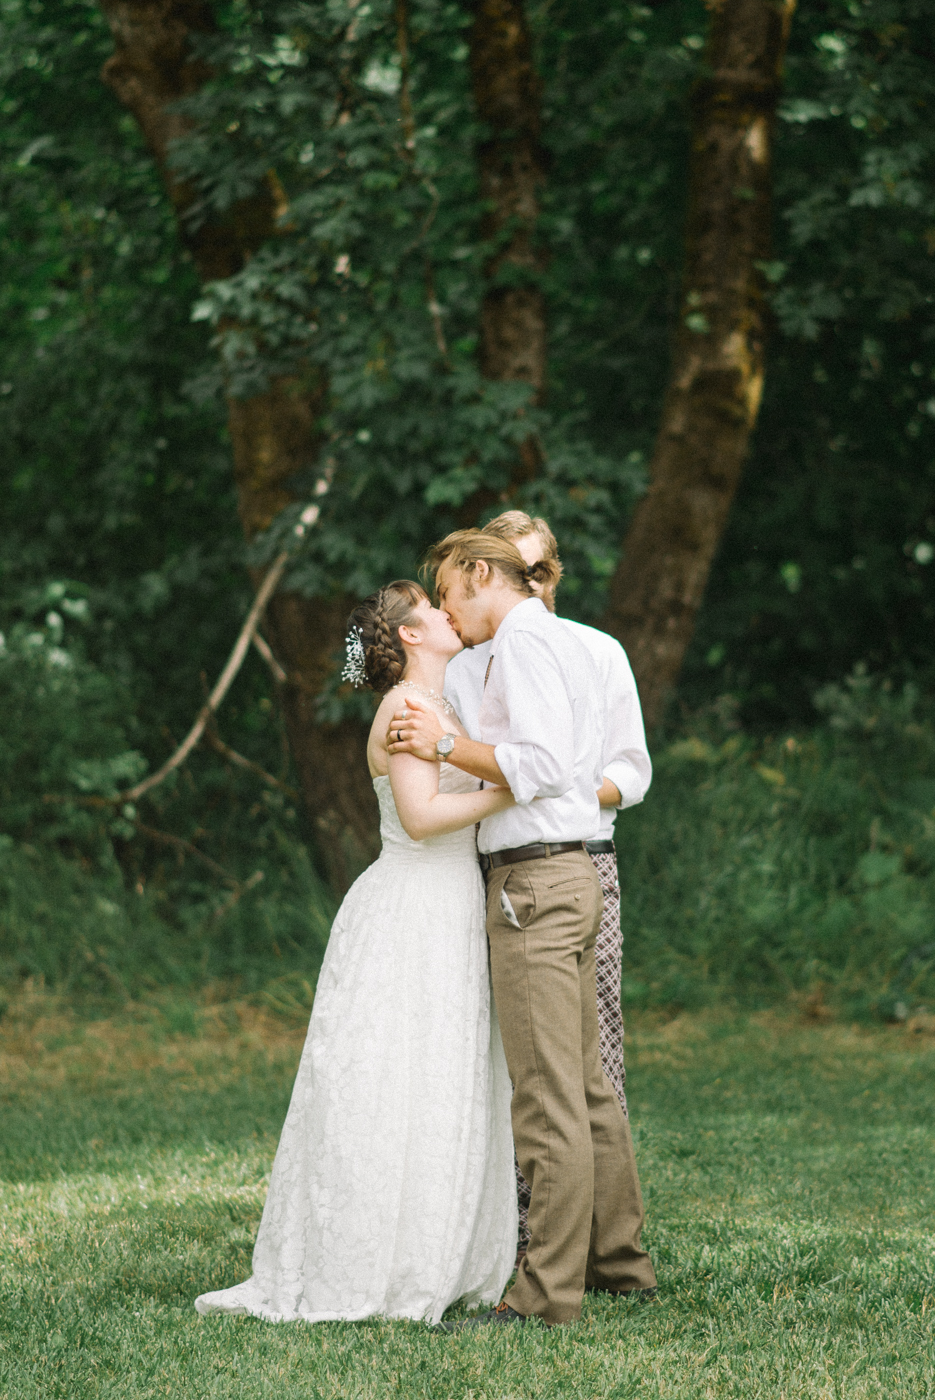 Dorris-Ranch-Wedding-kiss-Springfield-Oregon-Shelley-Marie-Photo-1